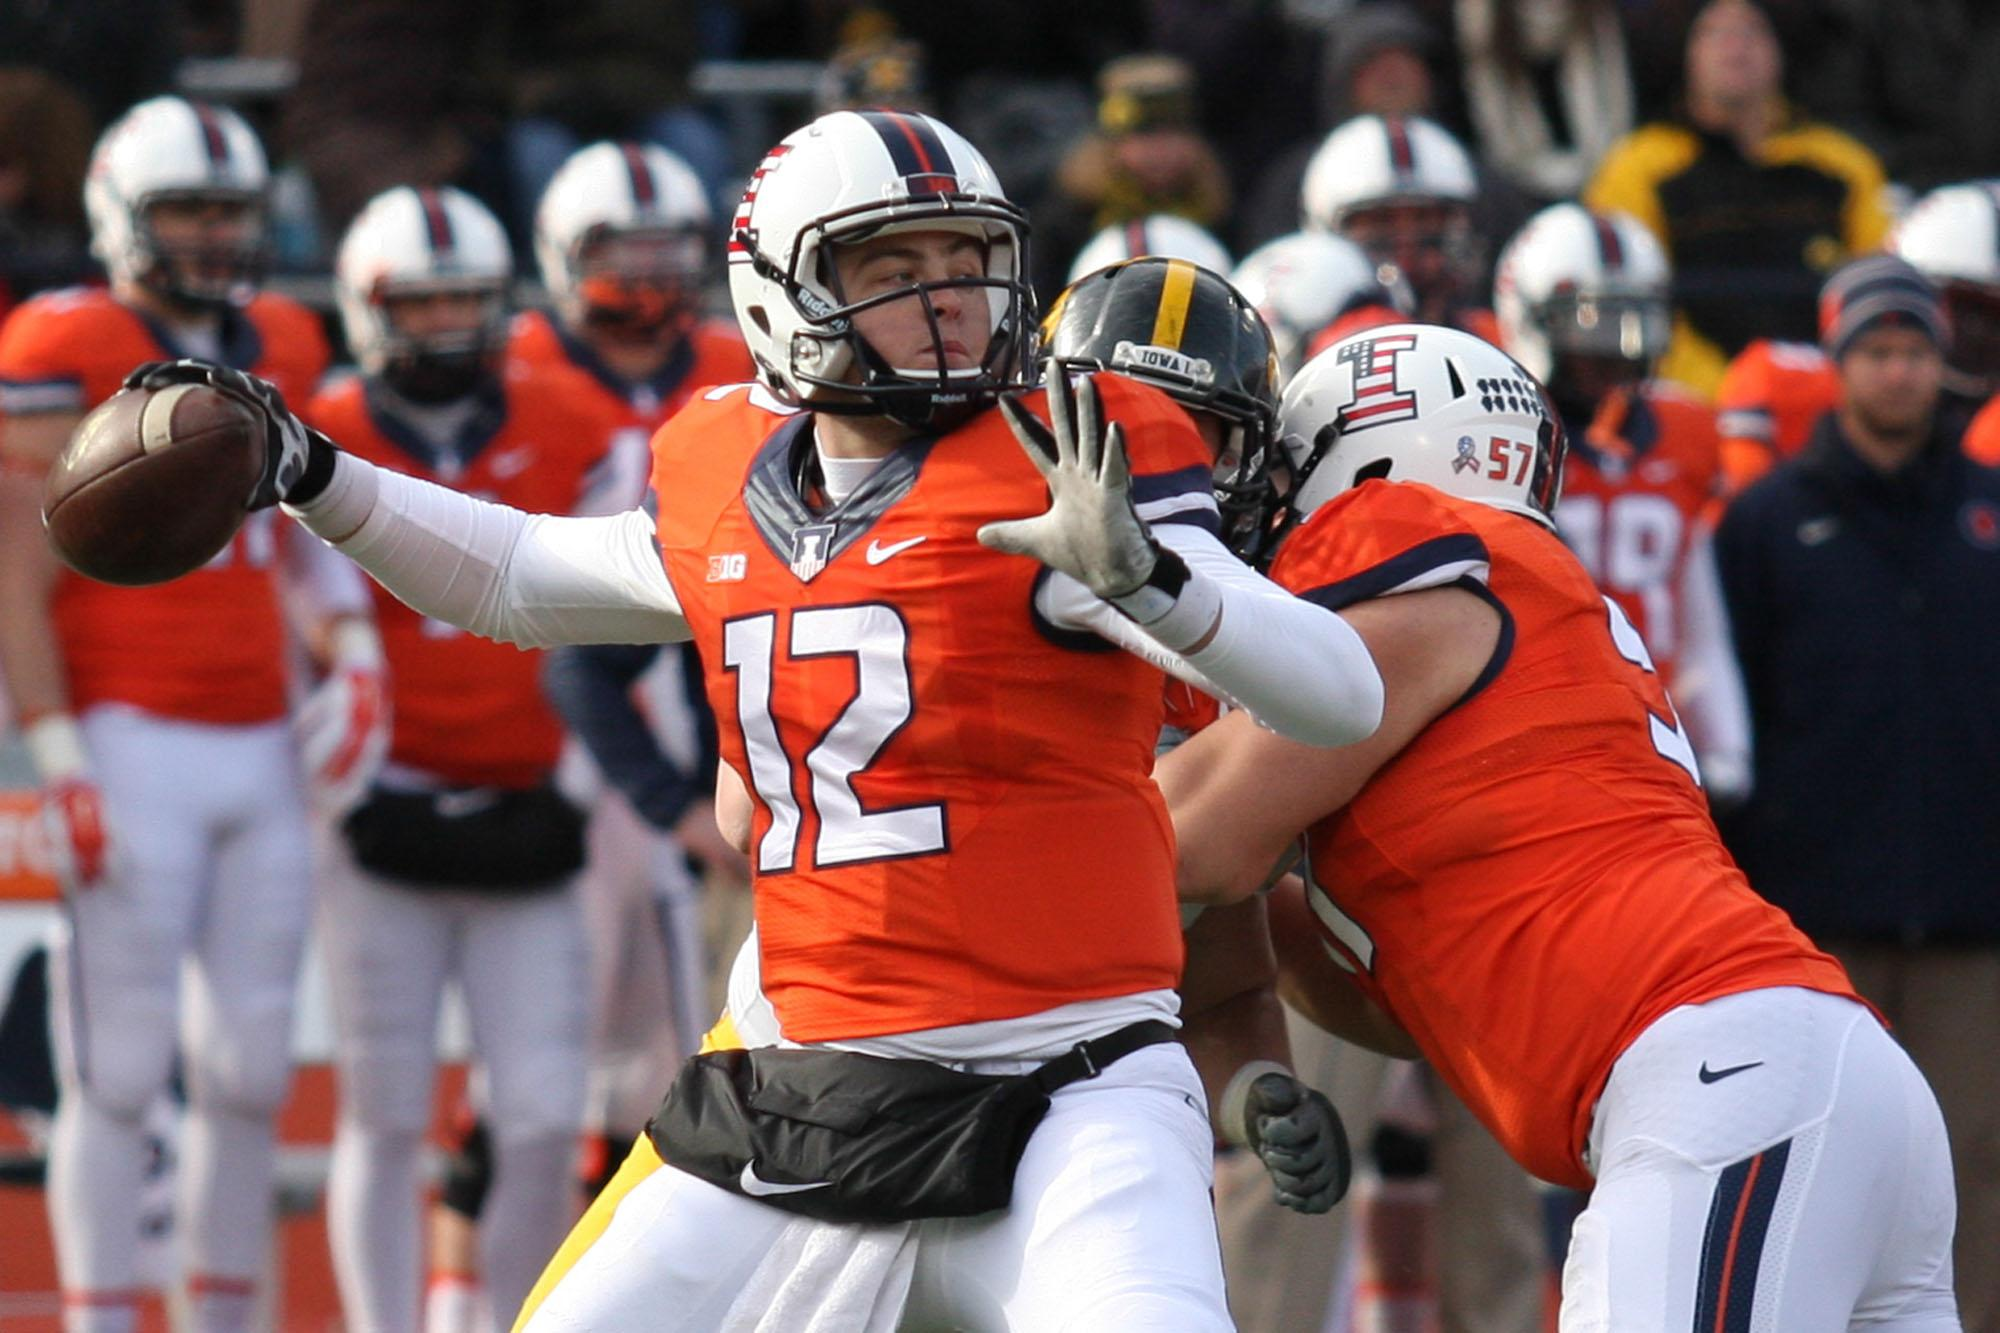 Joey+Gelman%2C+Dan+Collins+and+Masaki+Sugimoto+discuss+the+Illinois+football+win+over+Western+Illinois+and+preview+the+next+match+up+against+North+Carolina